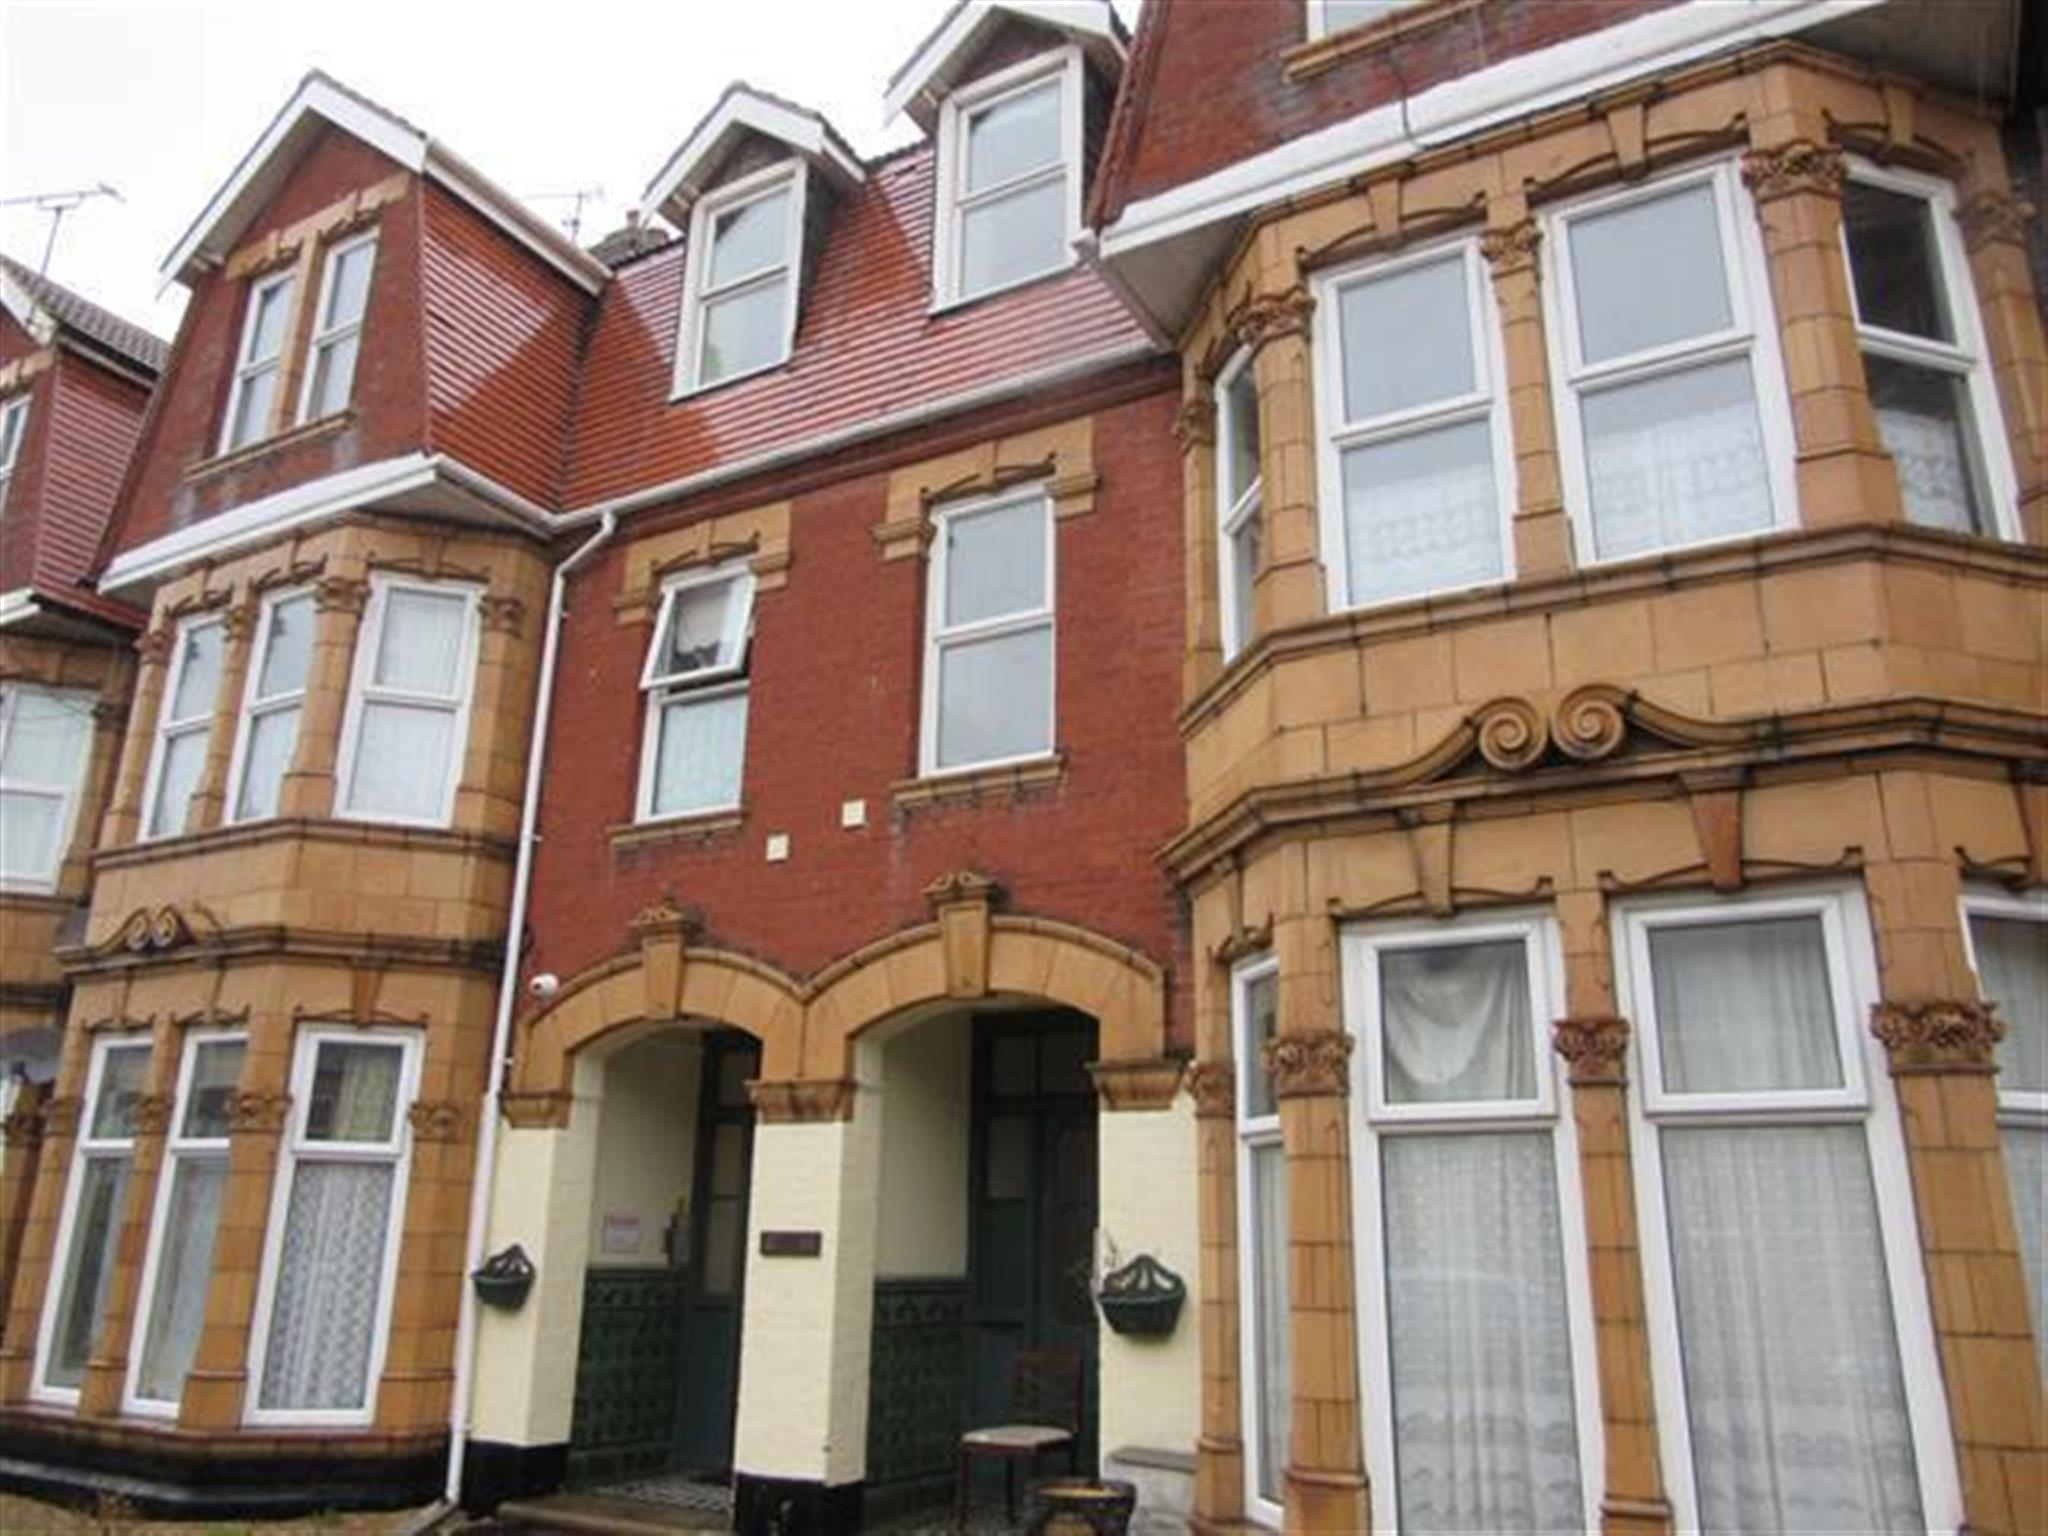 1 Bedroom Flats Rent Great Yarmouth 28 Images Great Yarmouth Studio Flat Great Yarmouth Nr30